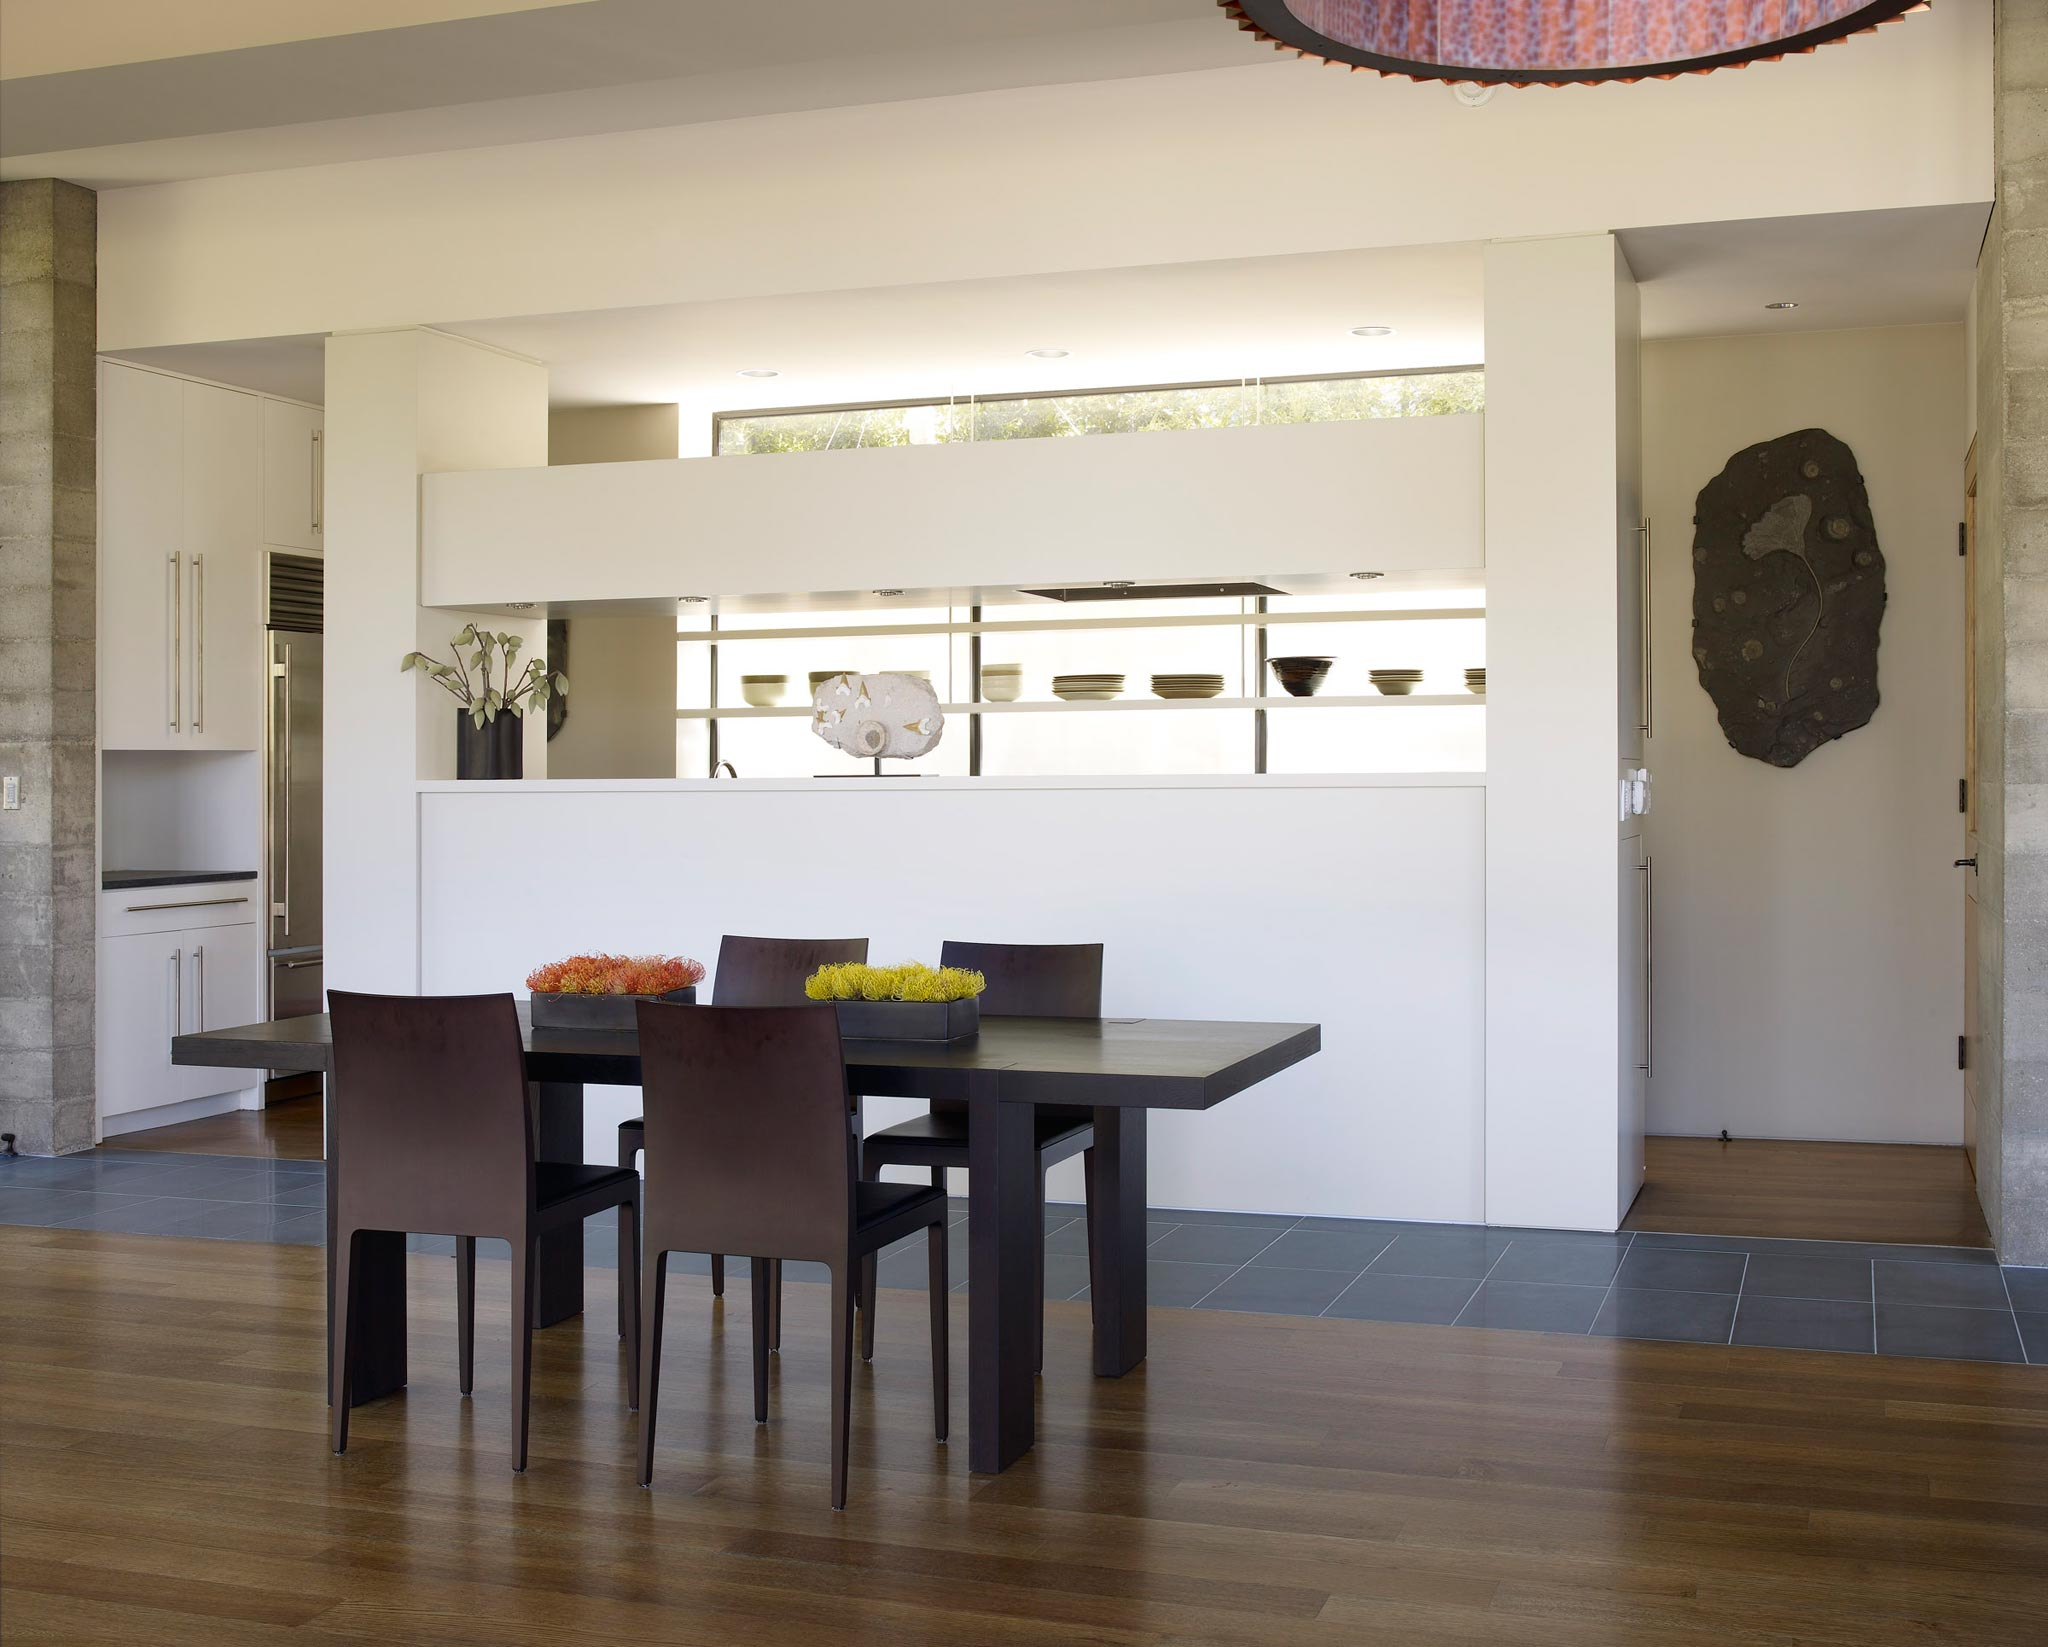 Claremont modern aesthetic pavillon house guest inside view of dining area